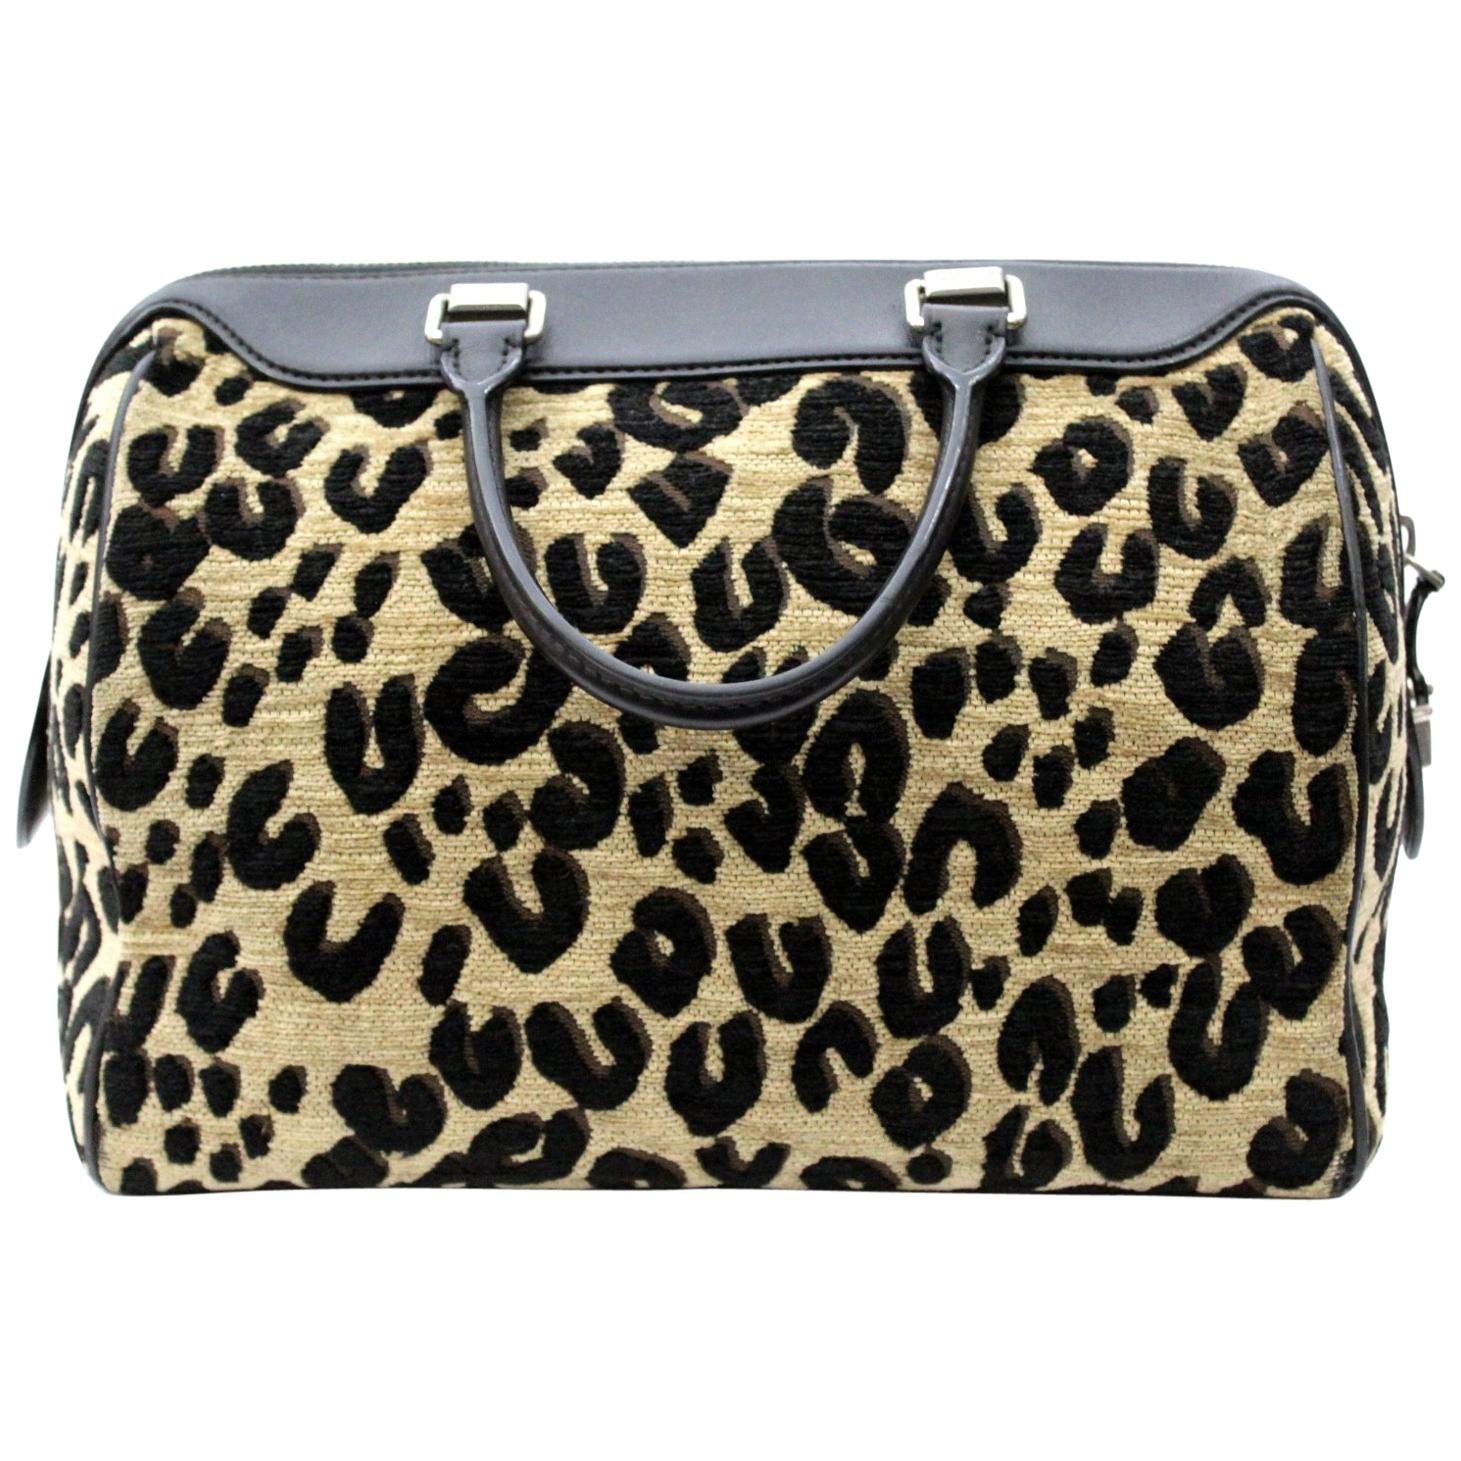 2012 Louis Vuitton Leopard Speedy Limited Edition Bag